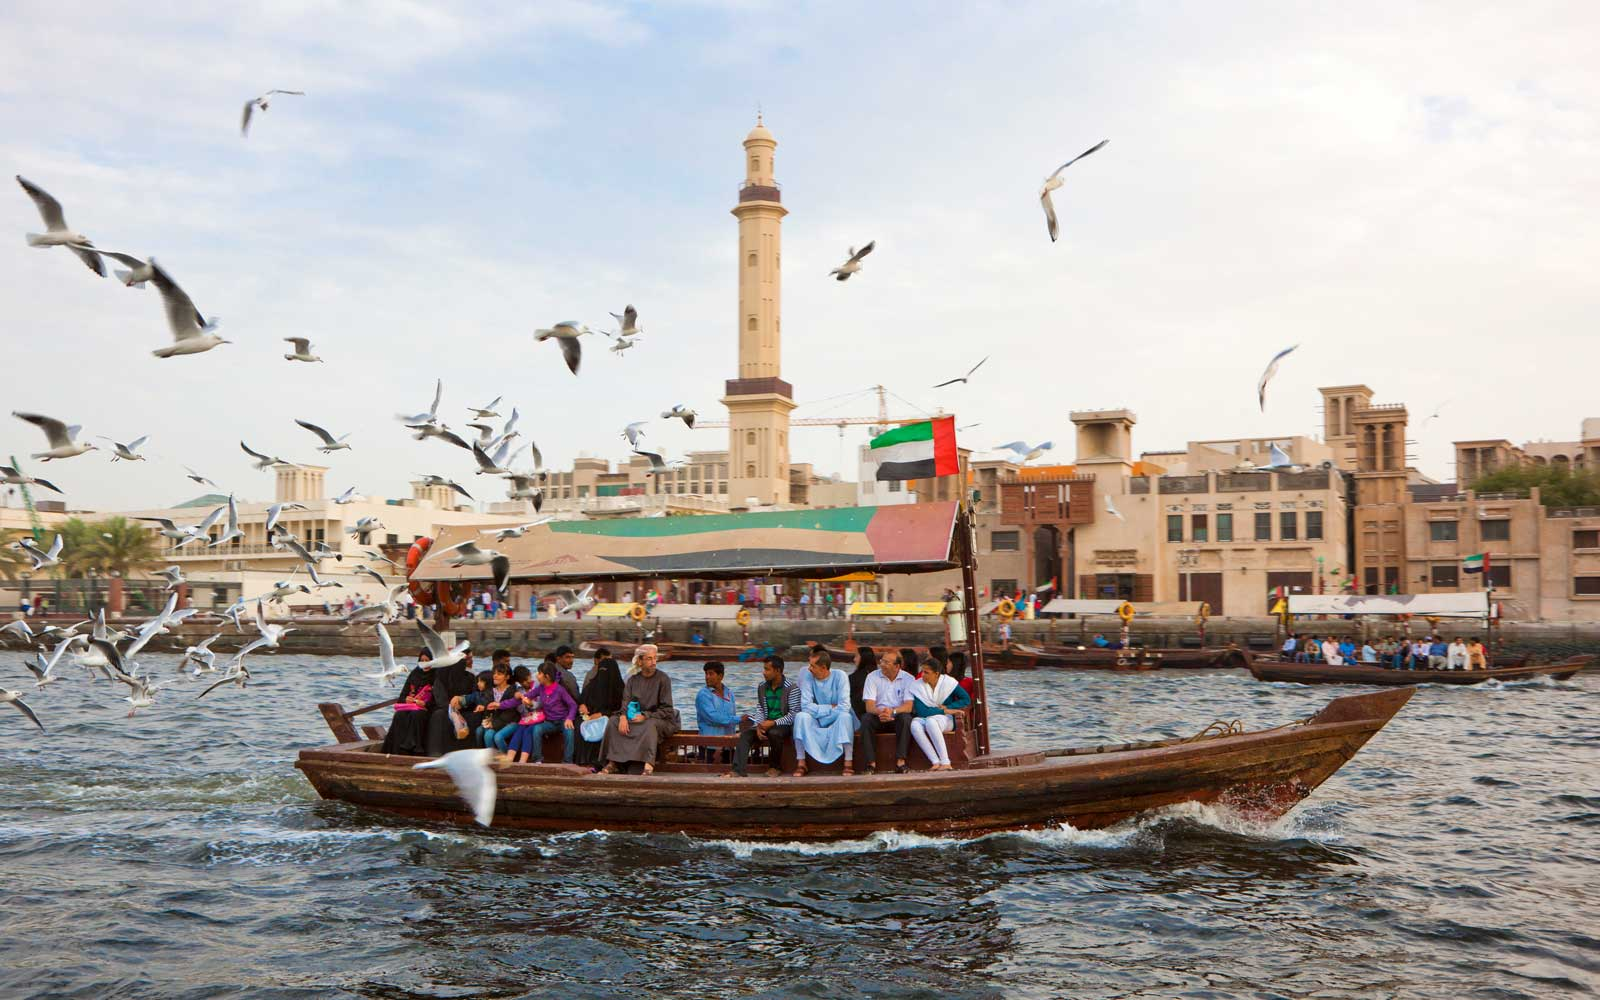 The Best Things to Do in Dubai, According to People Who Live There